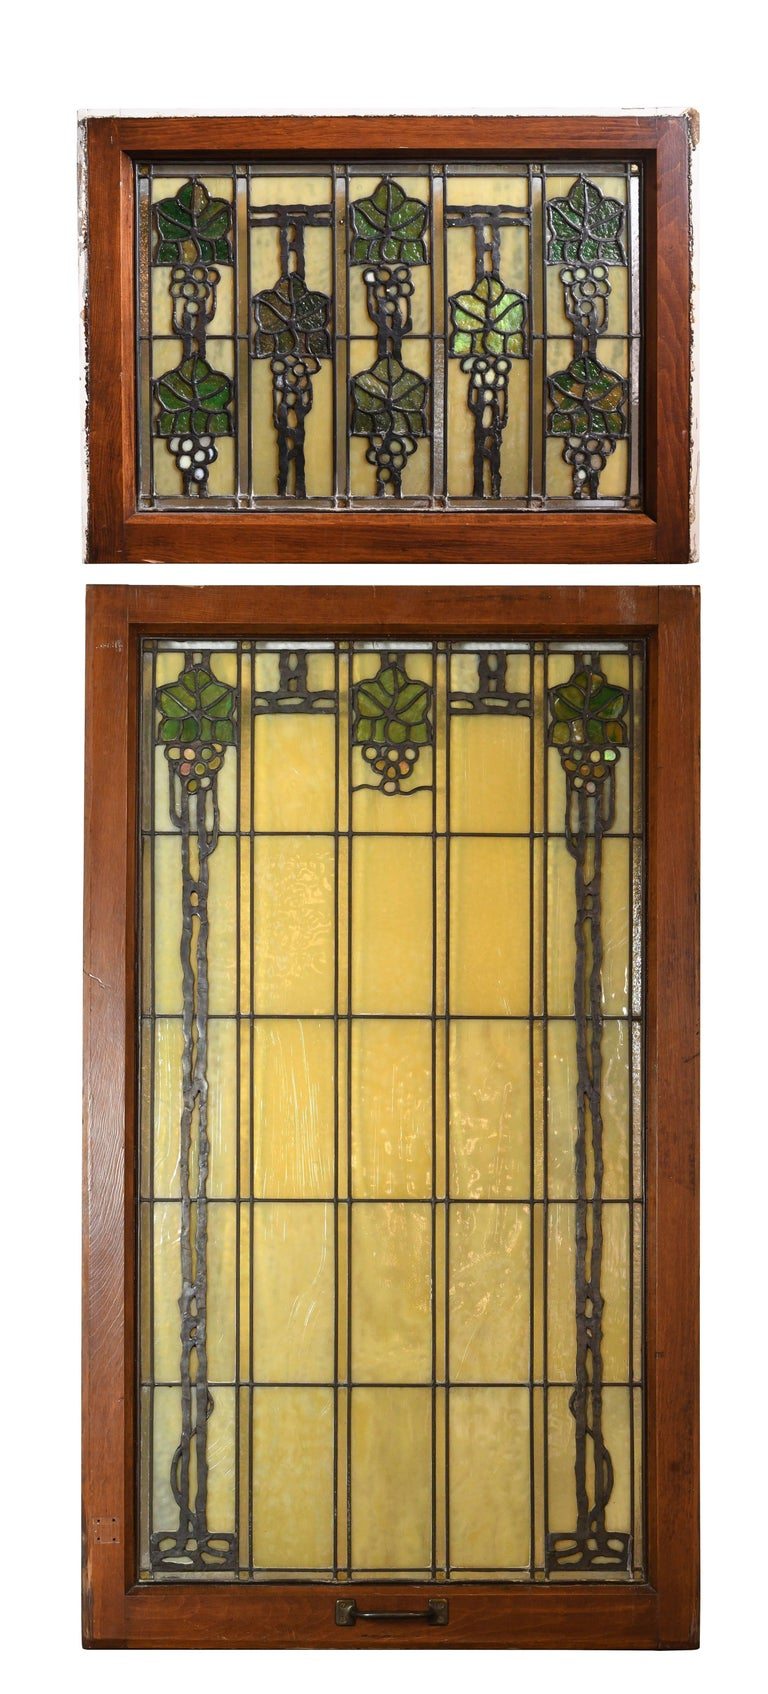 John S. Bradstreet Grape Leaves Stained Glass Window Set For Sale 2